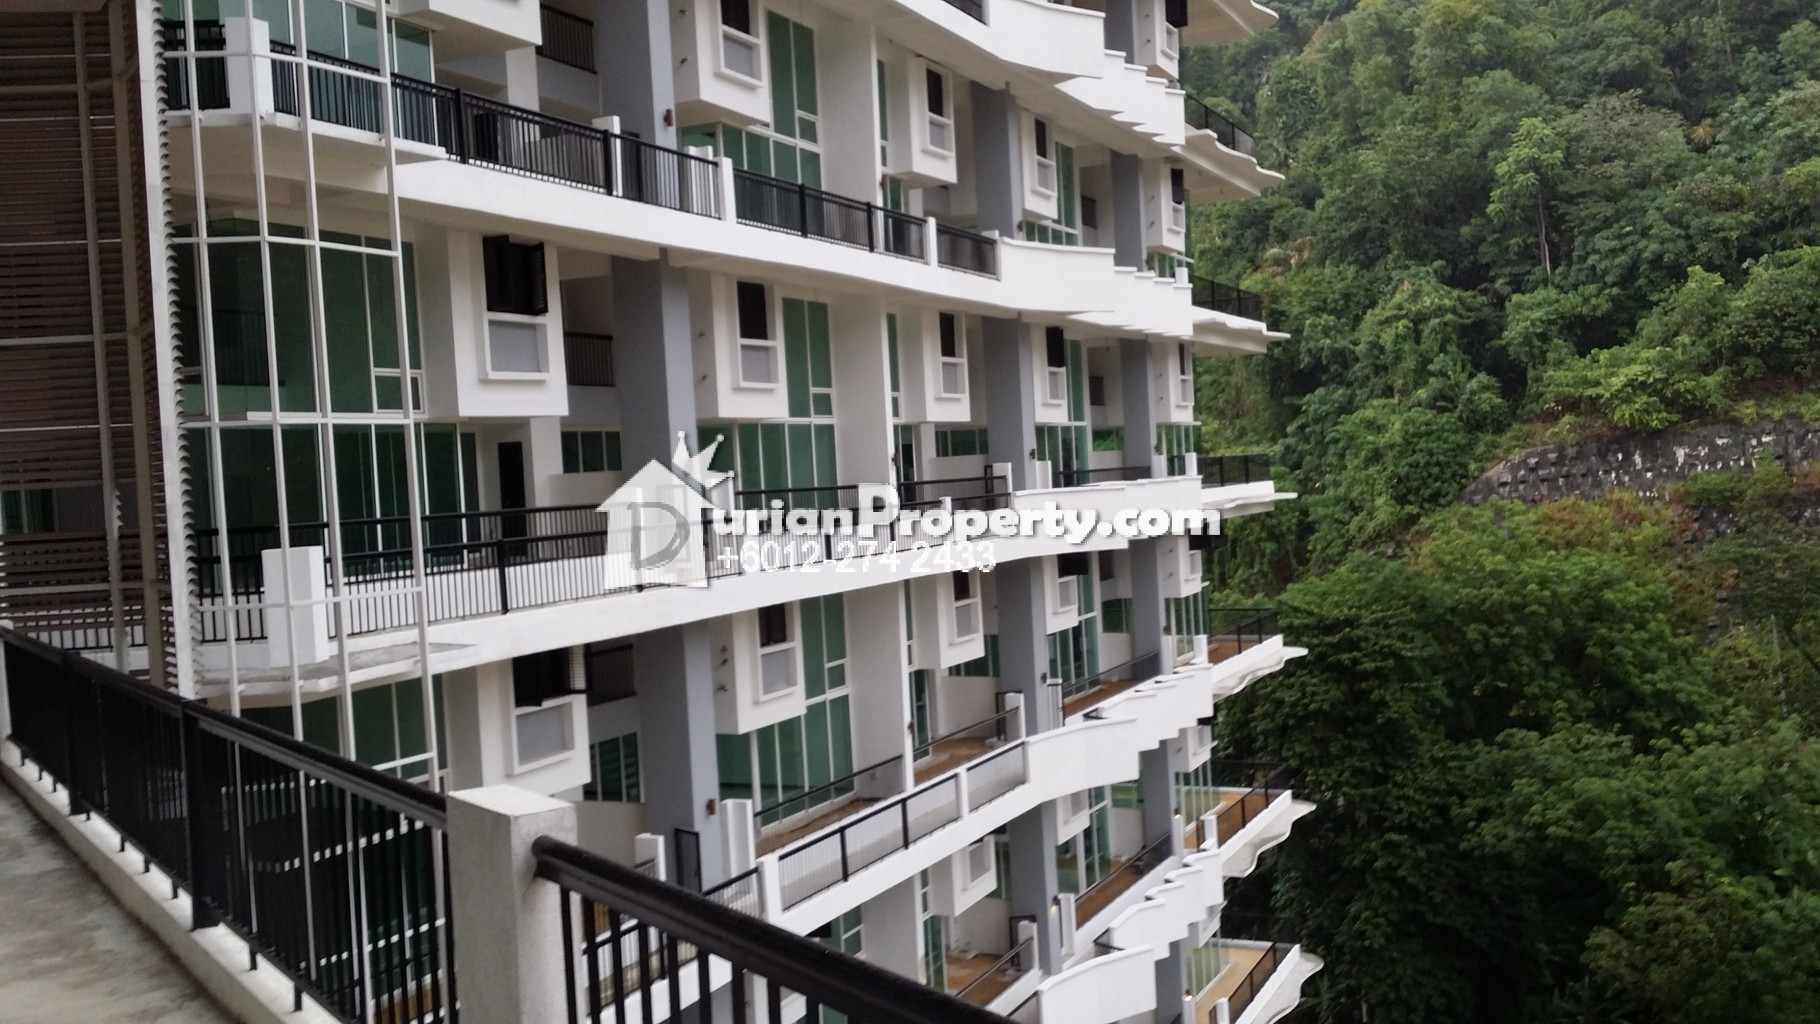 condo duplex for sale at armanee terrace ii damansara